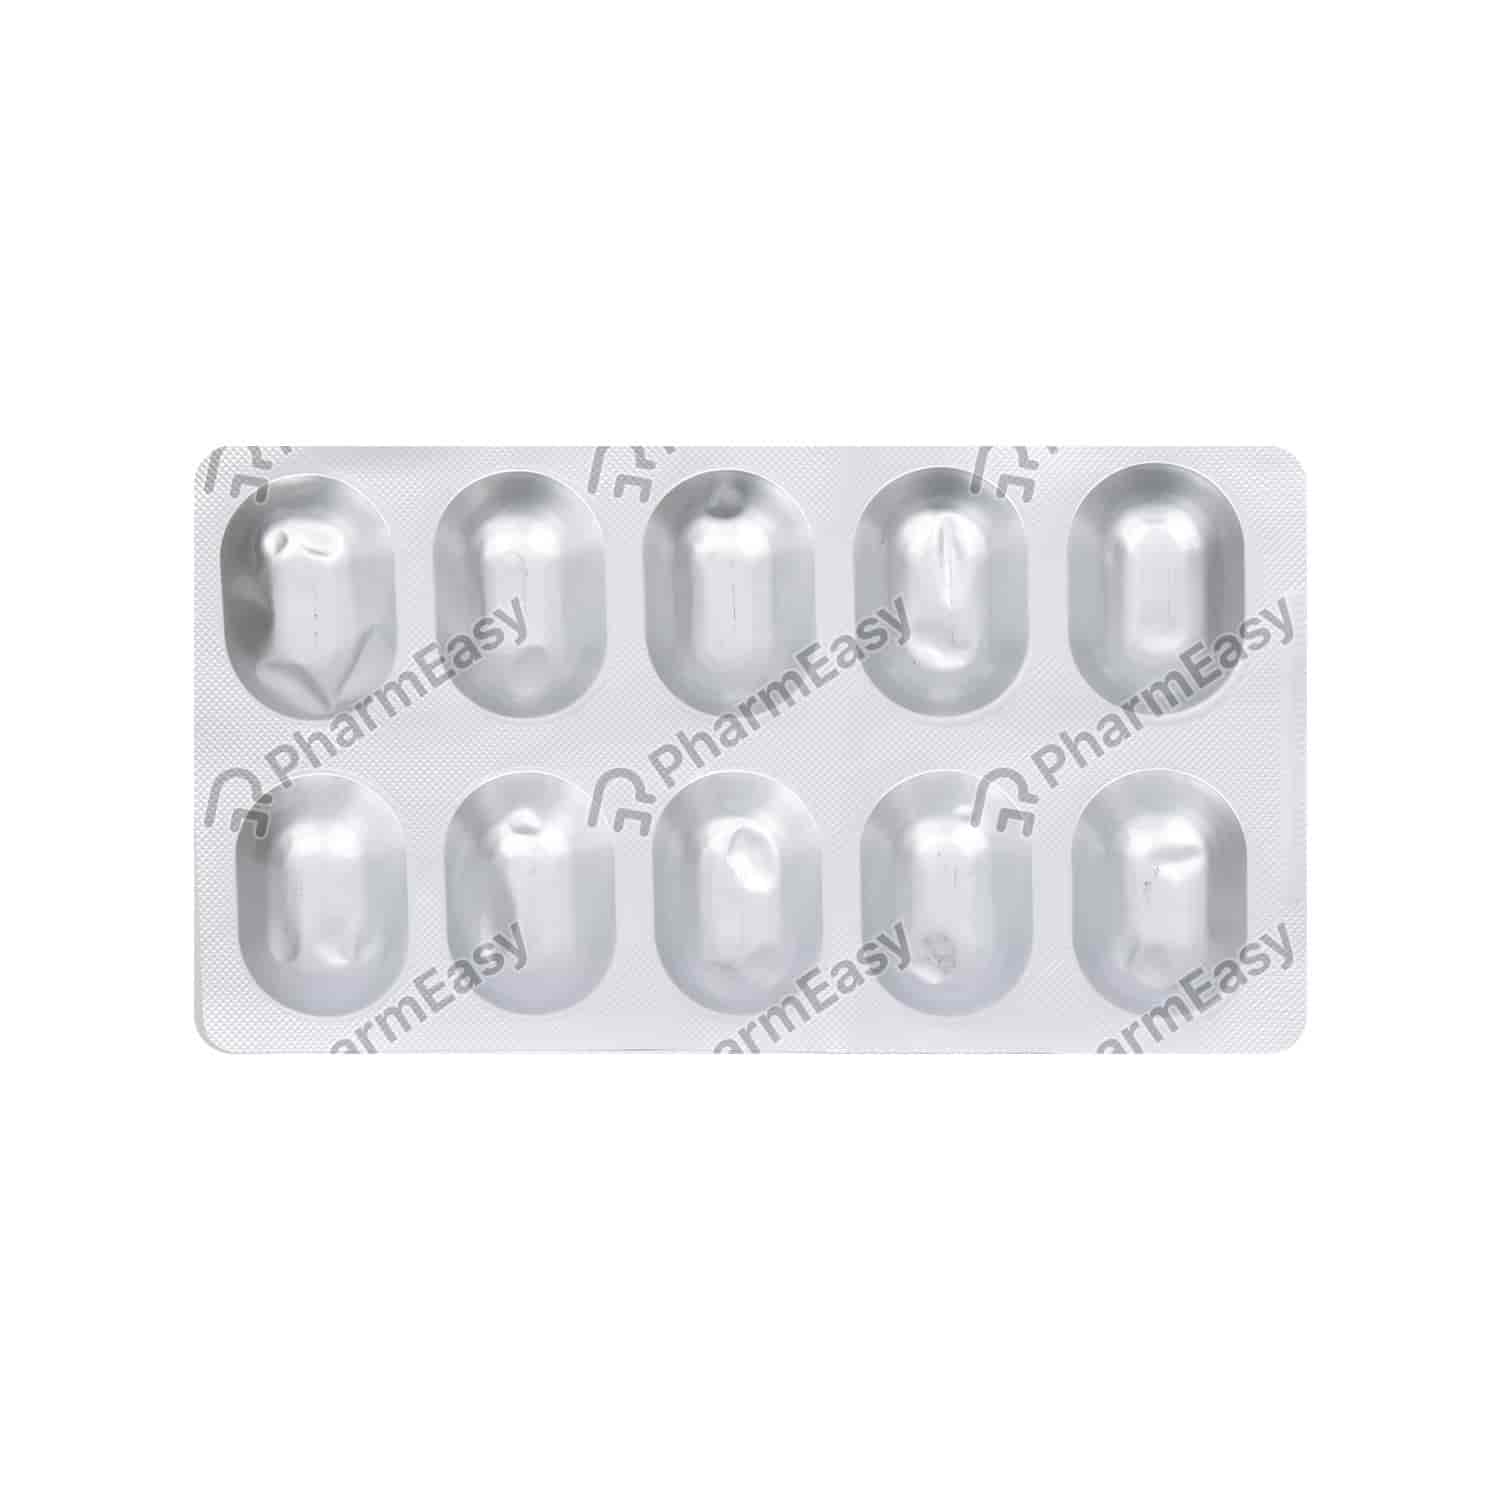 Valprol Cr 750mg Tablet